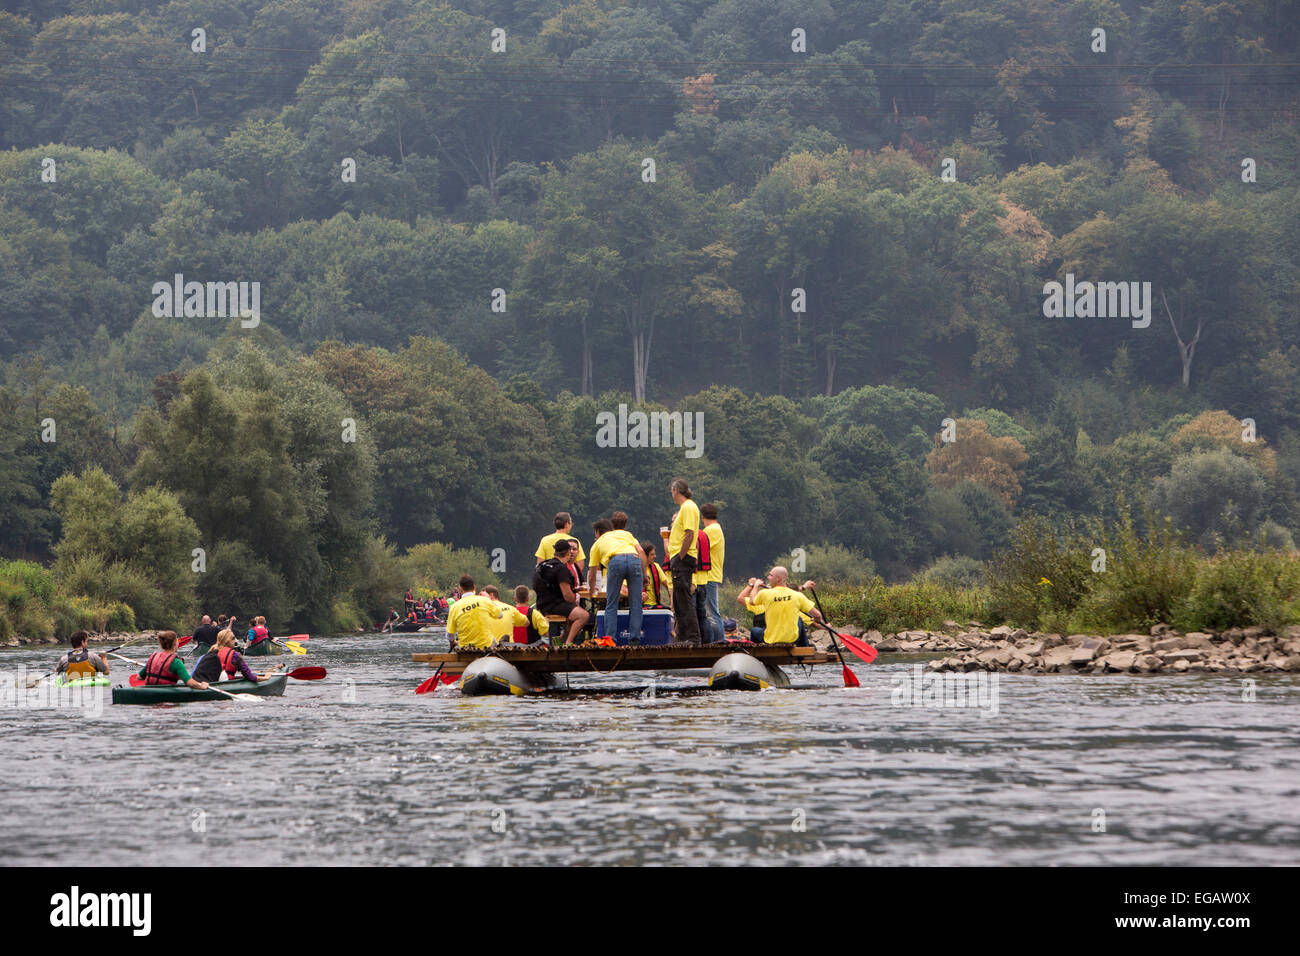 Floats, pleasure, party cruise on river Ruhr, near Hattingen, Germany Stock Photo